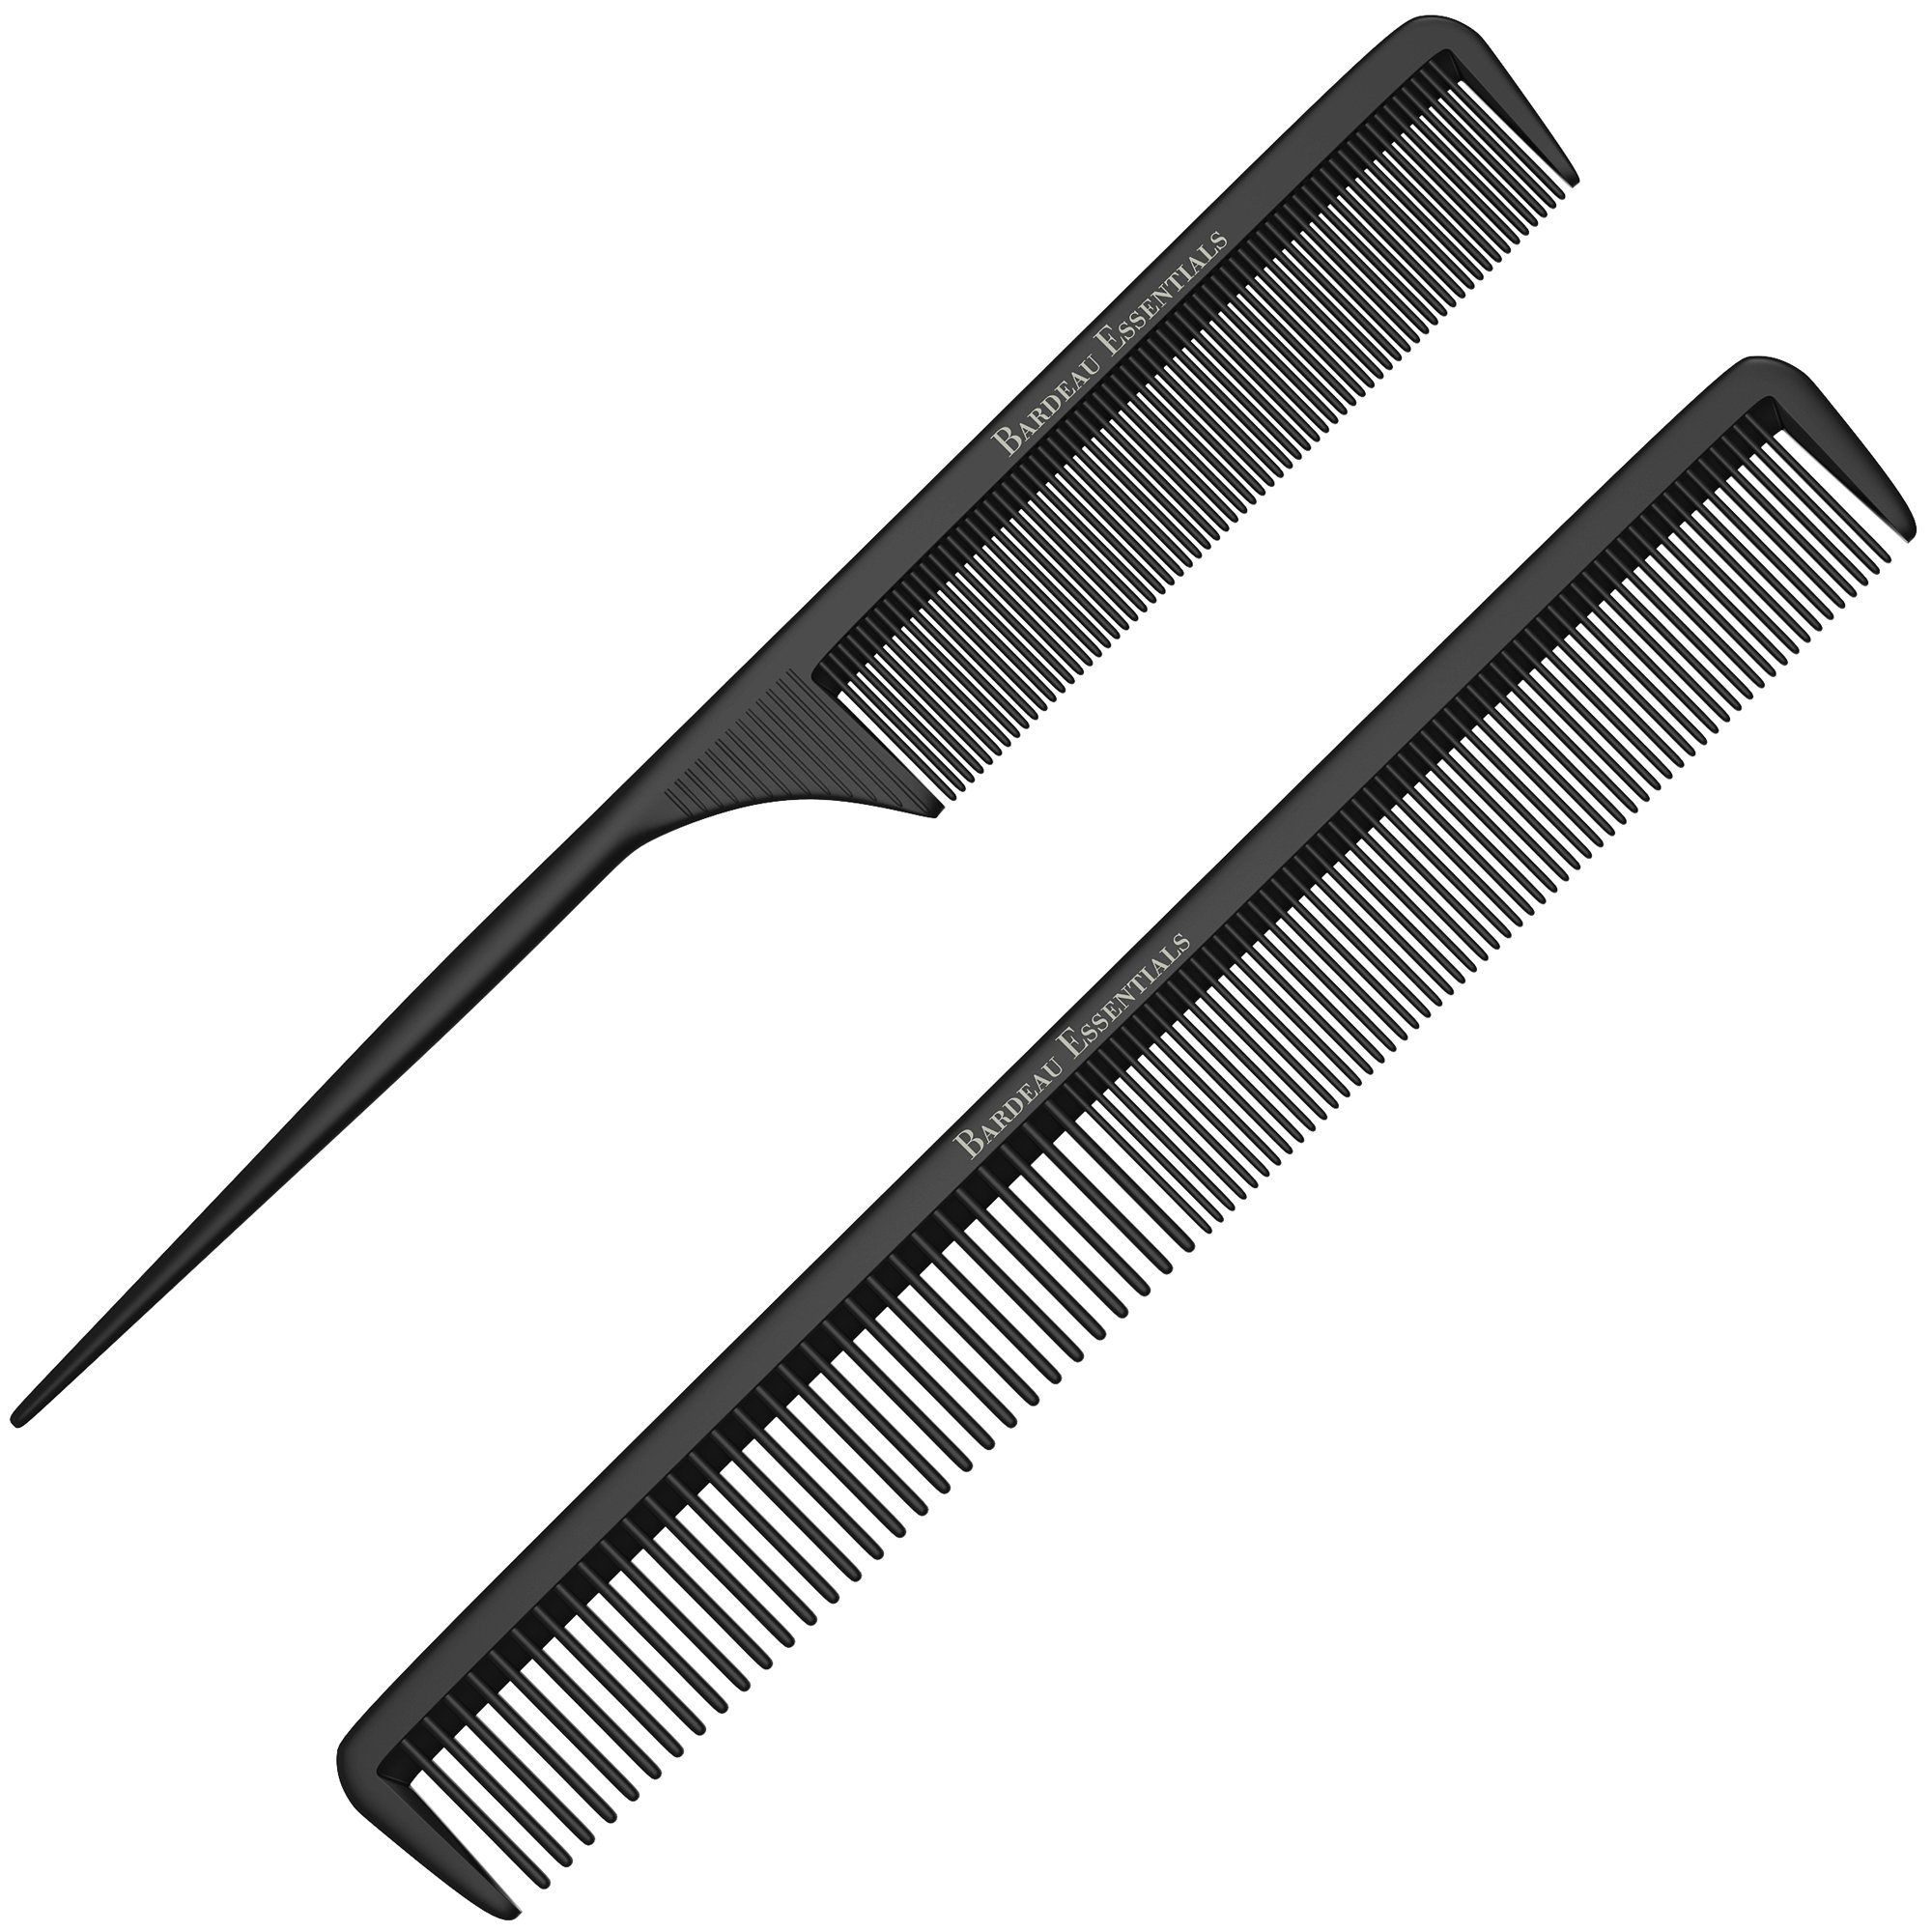 """Styling Comb and Tail Comb Combo Pack   Professional 8.75"""" Black Carbon Fiber Anti Static Chemical And Heat Resistant Combs For All Hair Types   For Men and Women   By Bardeau Essentials"""